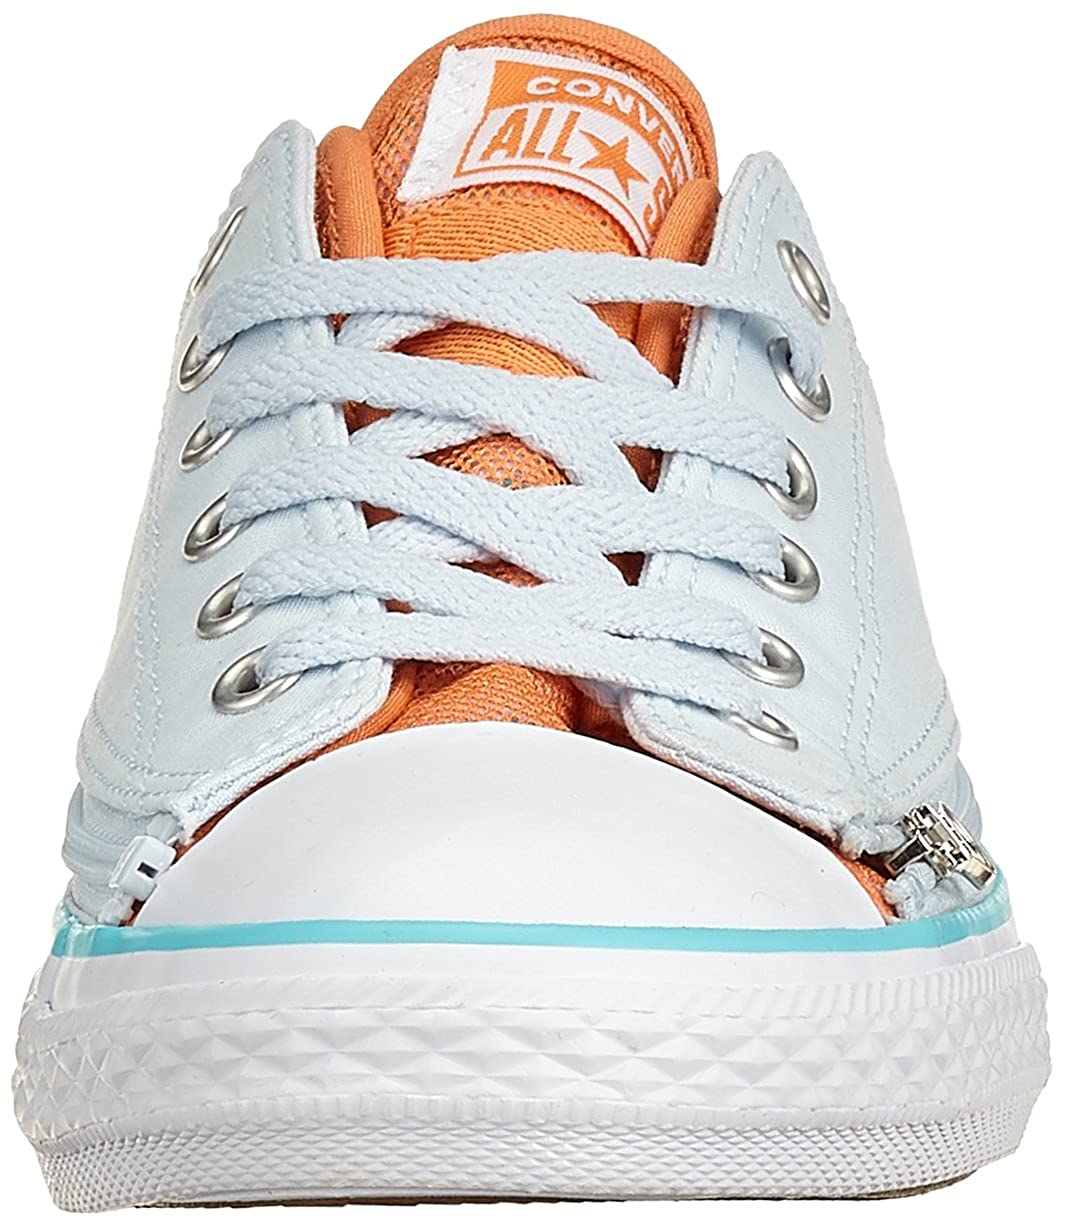 cb7c27ddc72f Converse Unisex Kids  CTAS Zip Star Ox Blue Tint Nectarine Trainers   Amazon.co.uk  Shoes   Bags